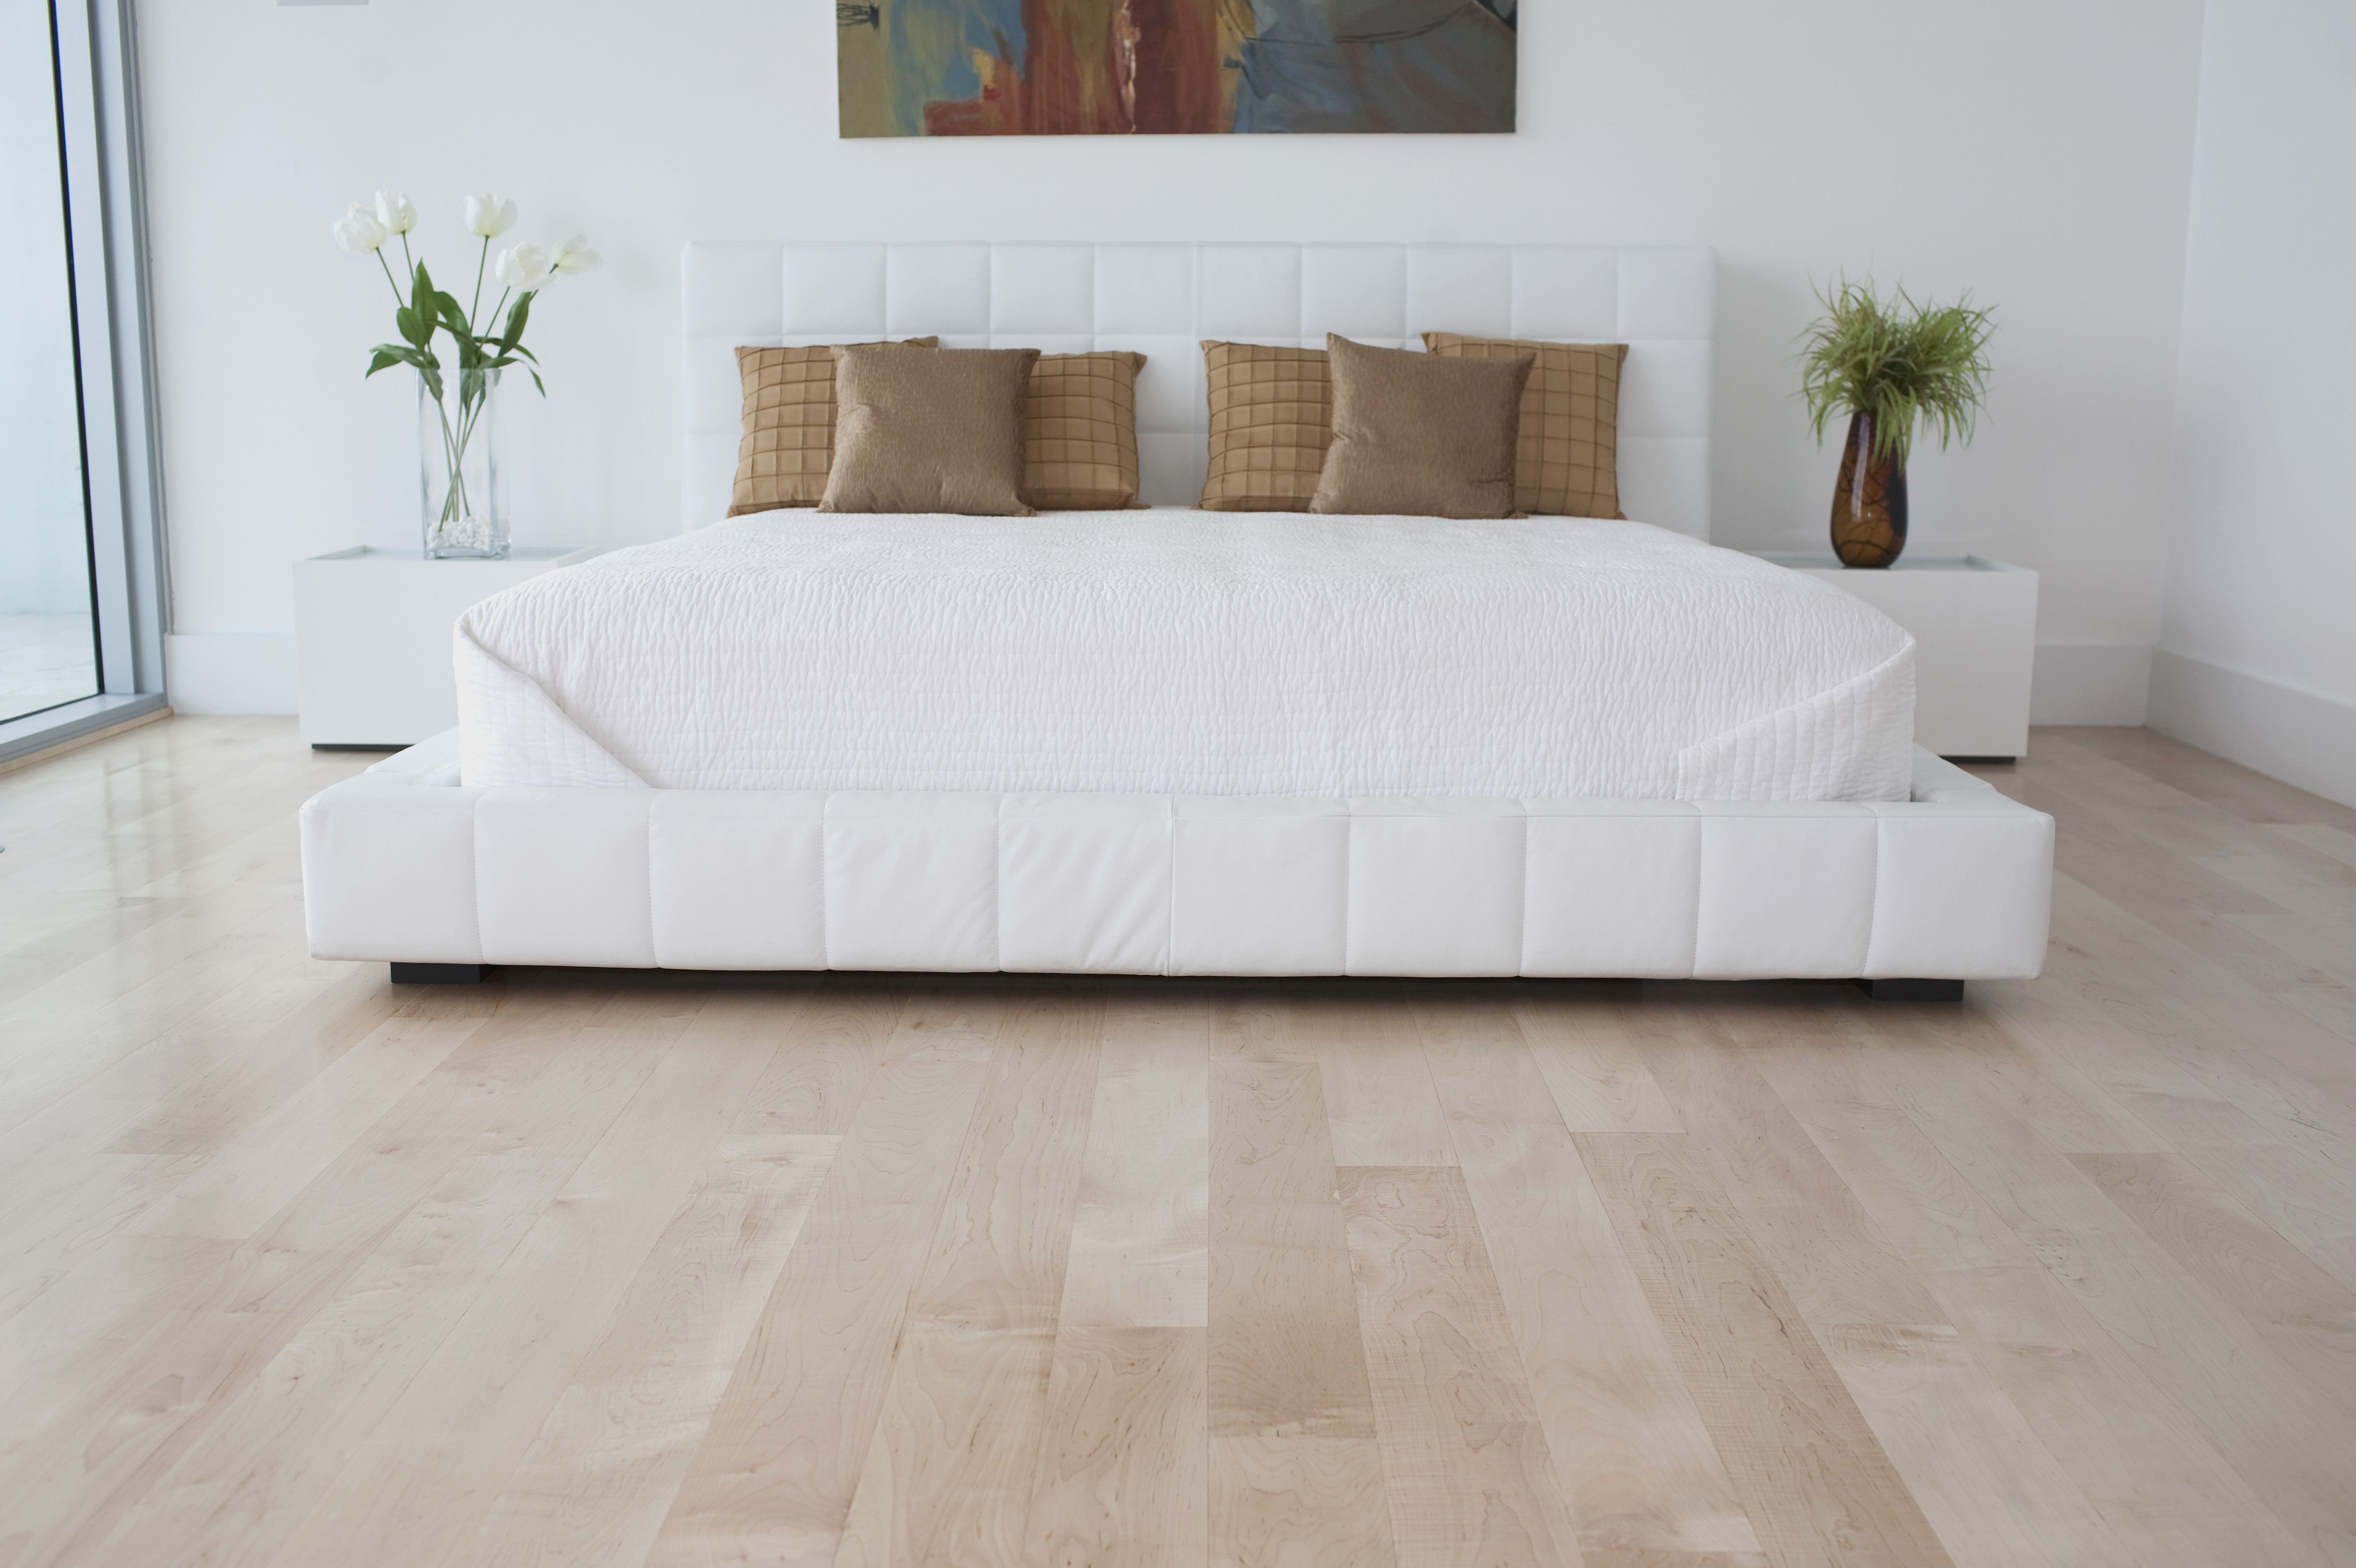 hardwood floor refinishing waukesha wi of 5 best bedroom flooring materials for interiors of a bedroom 126171674 57be063d3df78cc16e3cc6cf